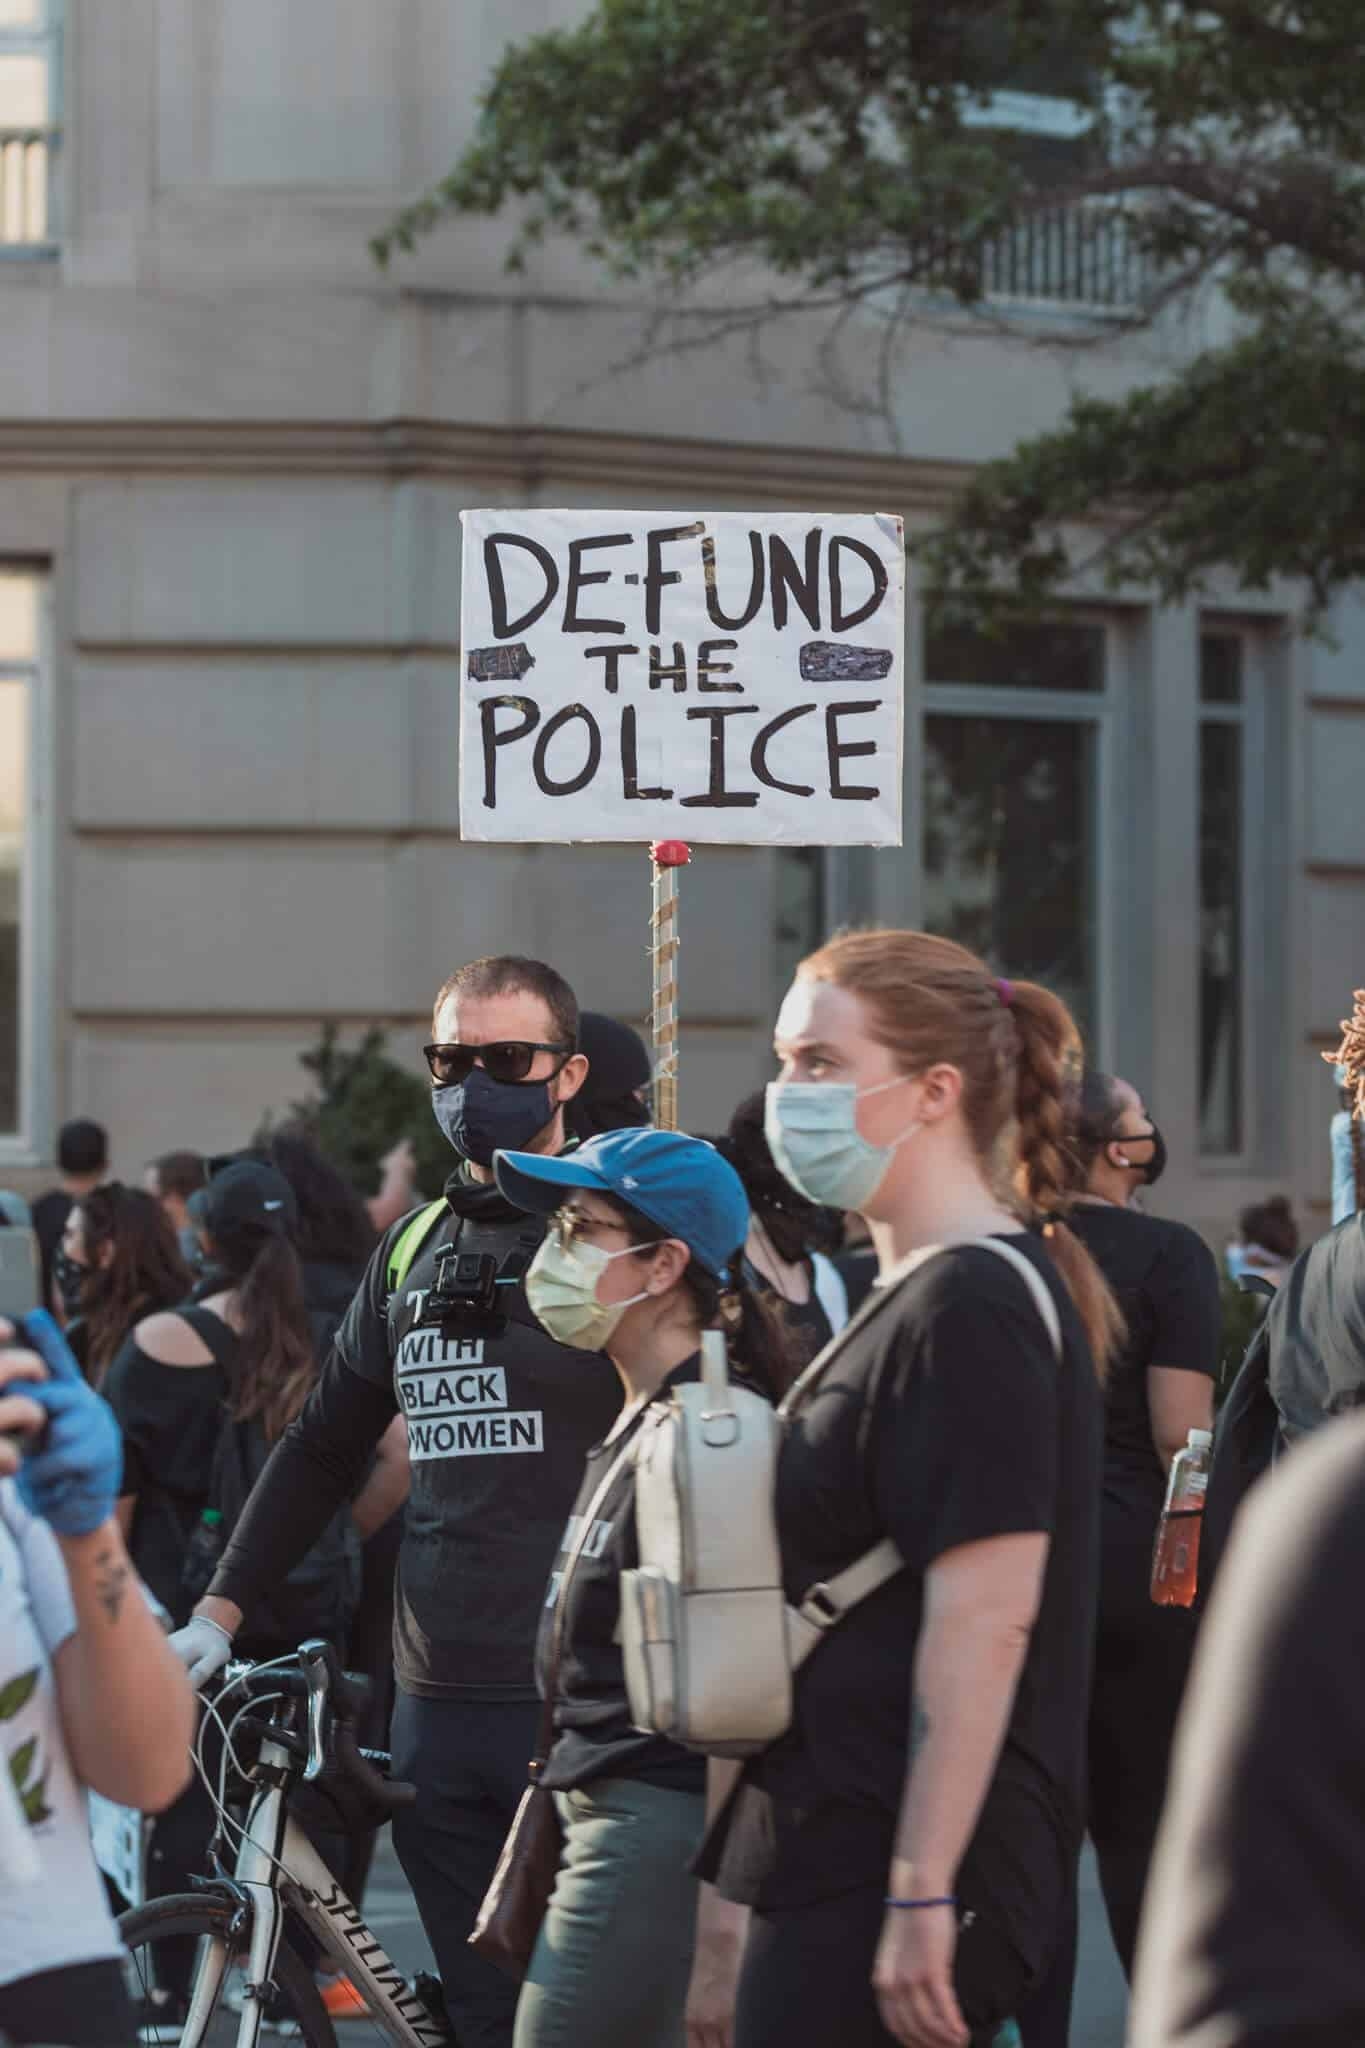 Defund Police - Black Lives Matter Protest - Washington DC - Photo by Yash Mori